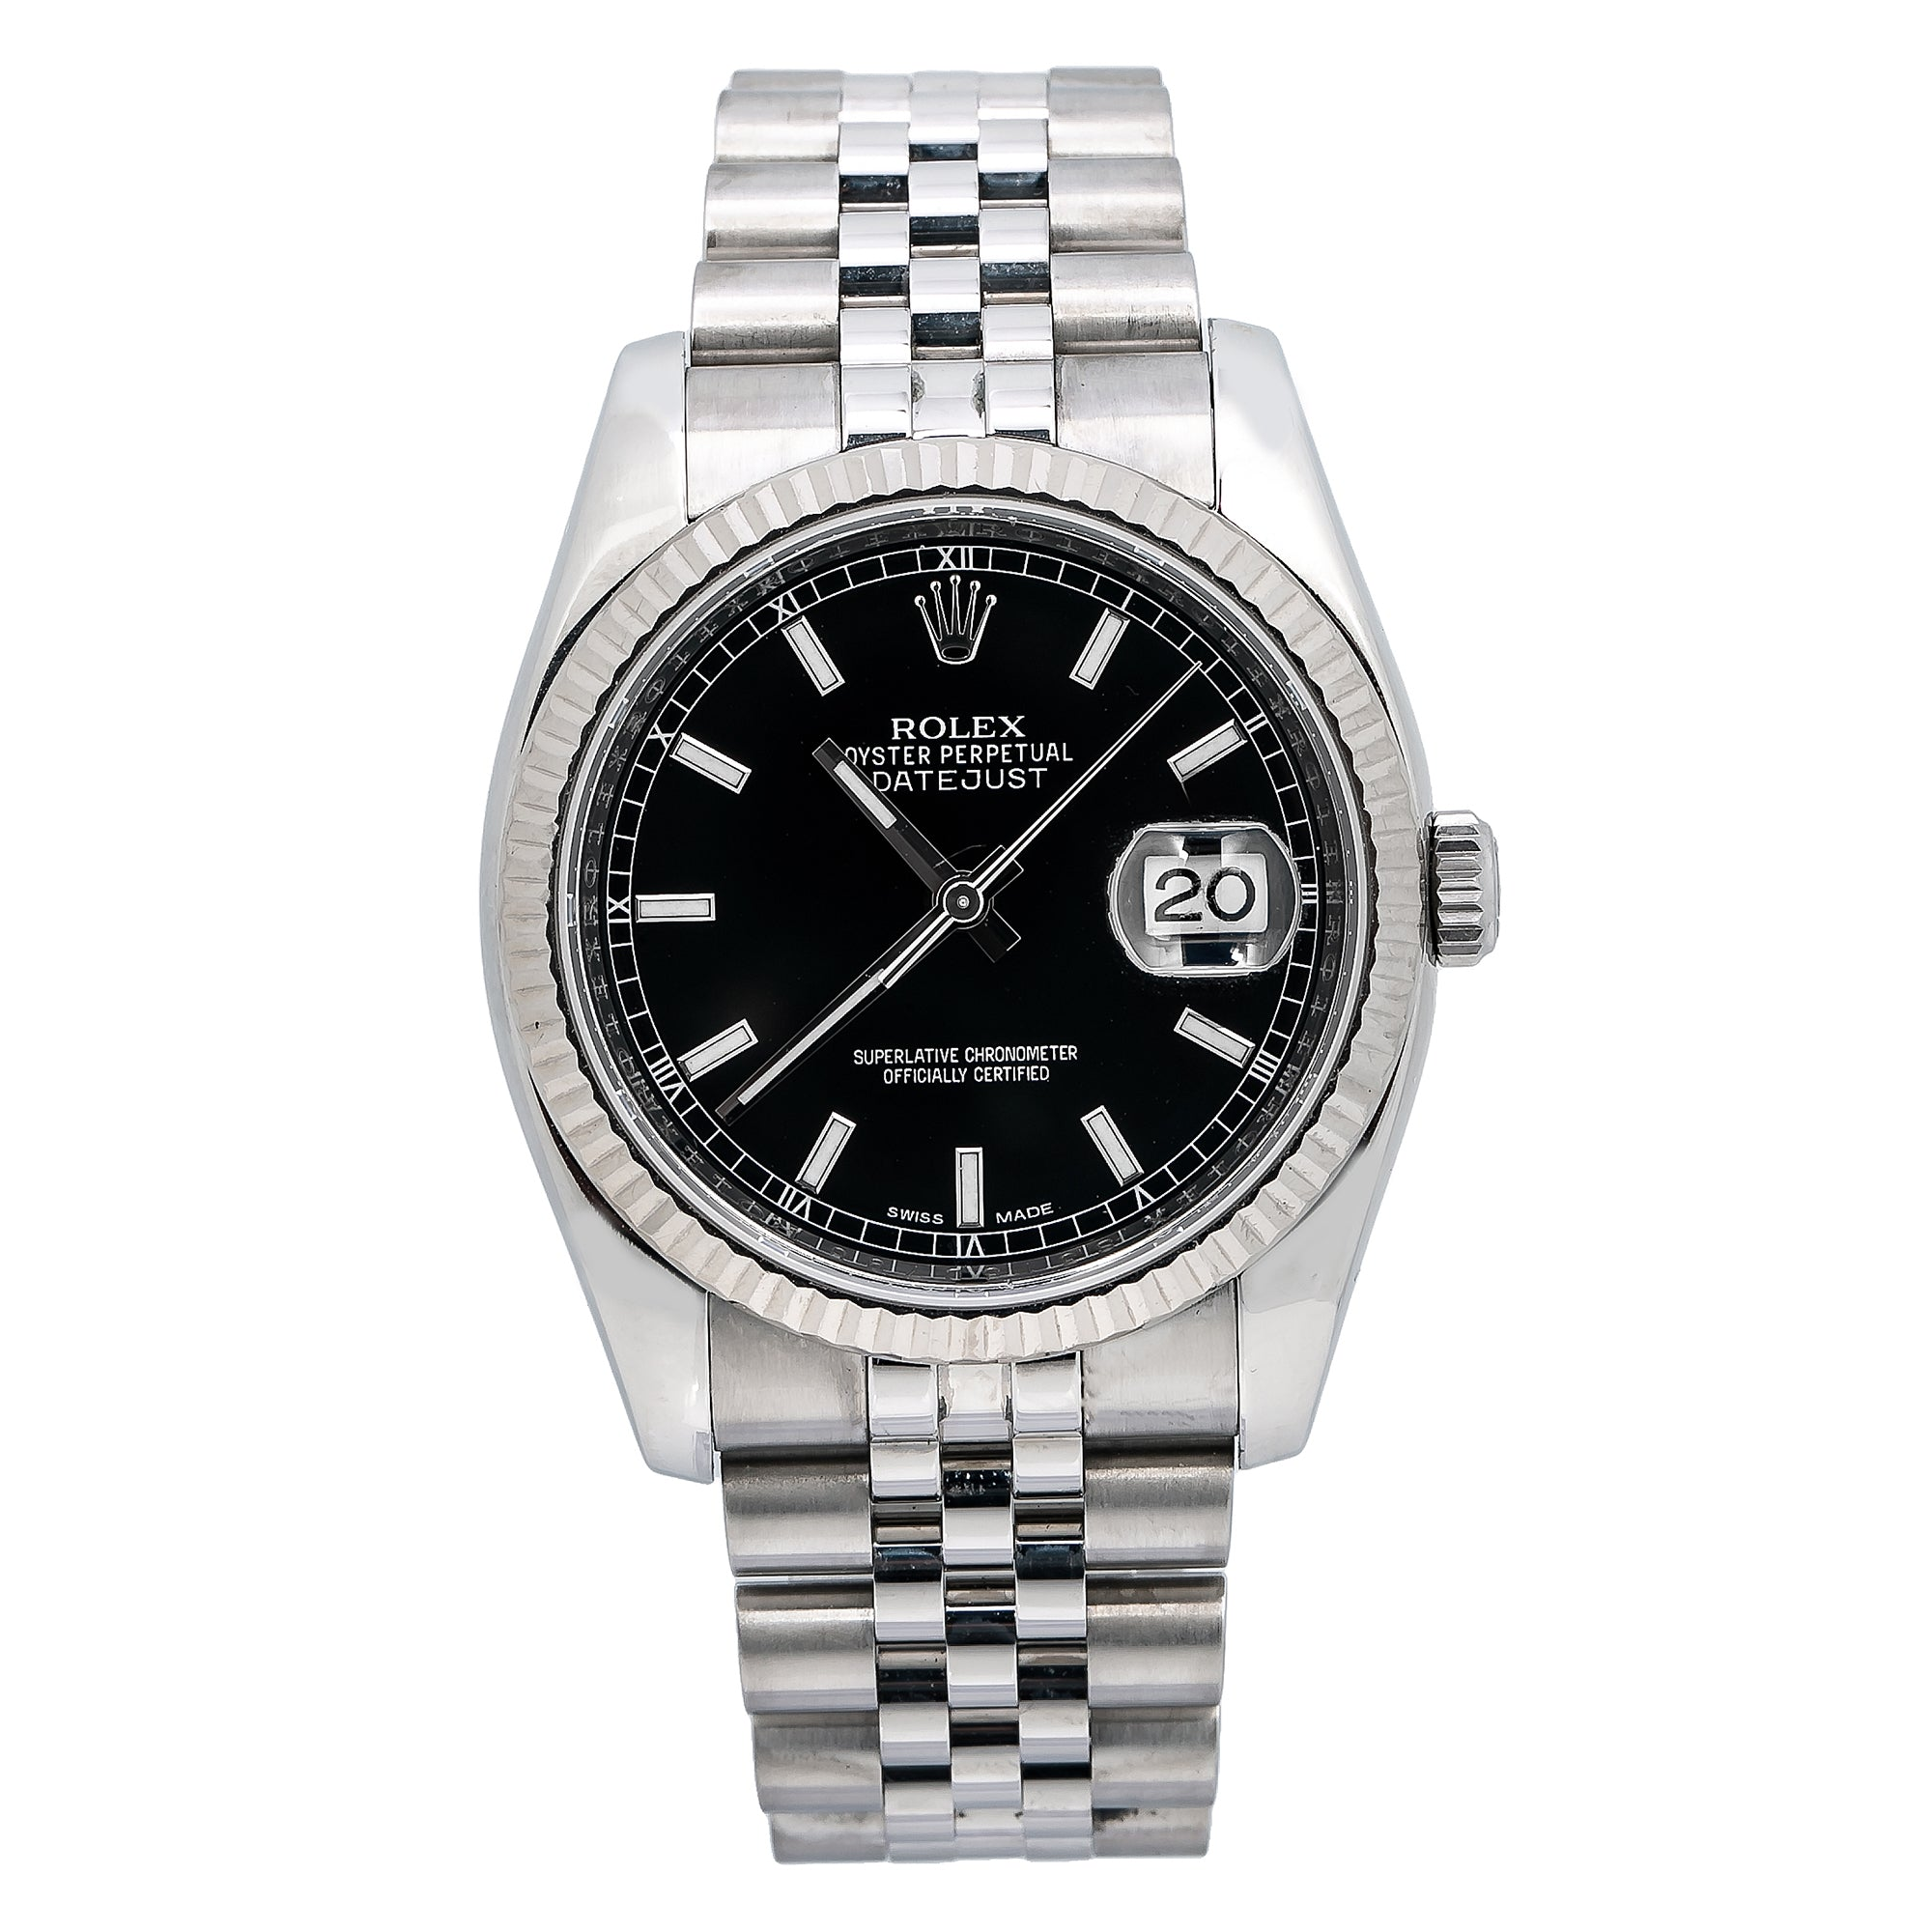 Rolex Datejust 116234 36MM Black Dial With Stainless Steel Bracelet